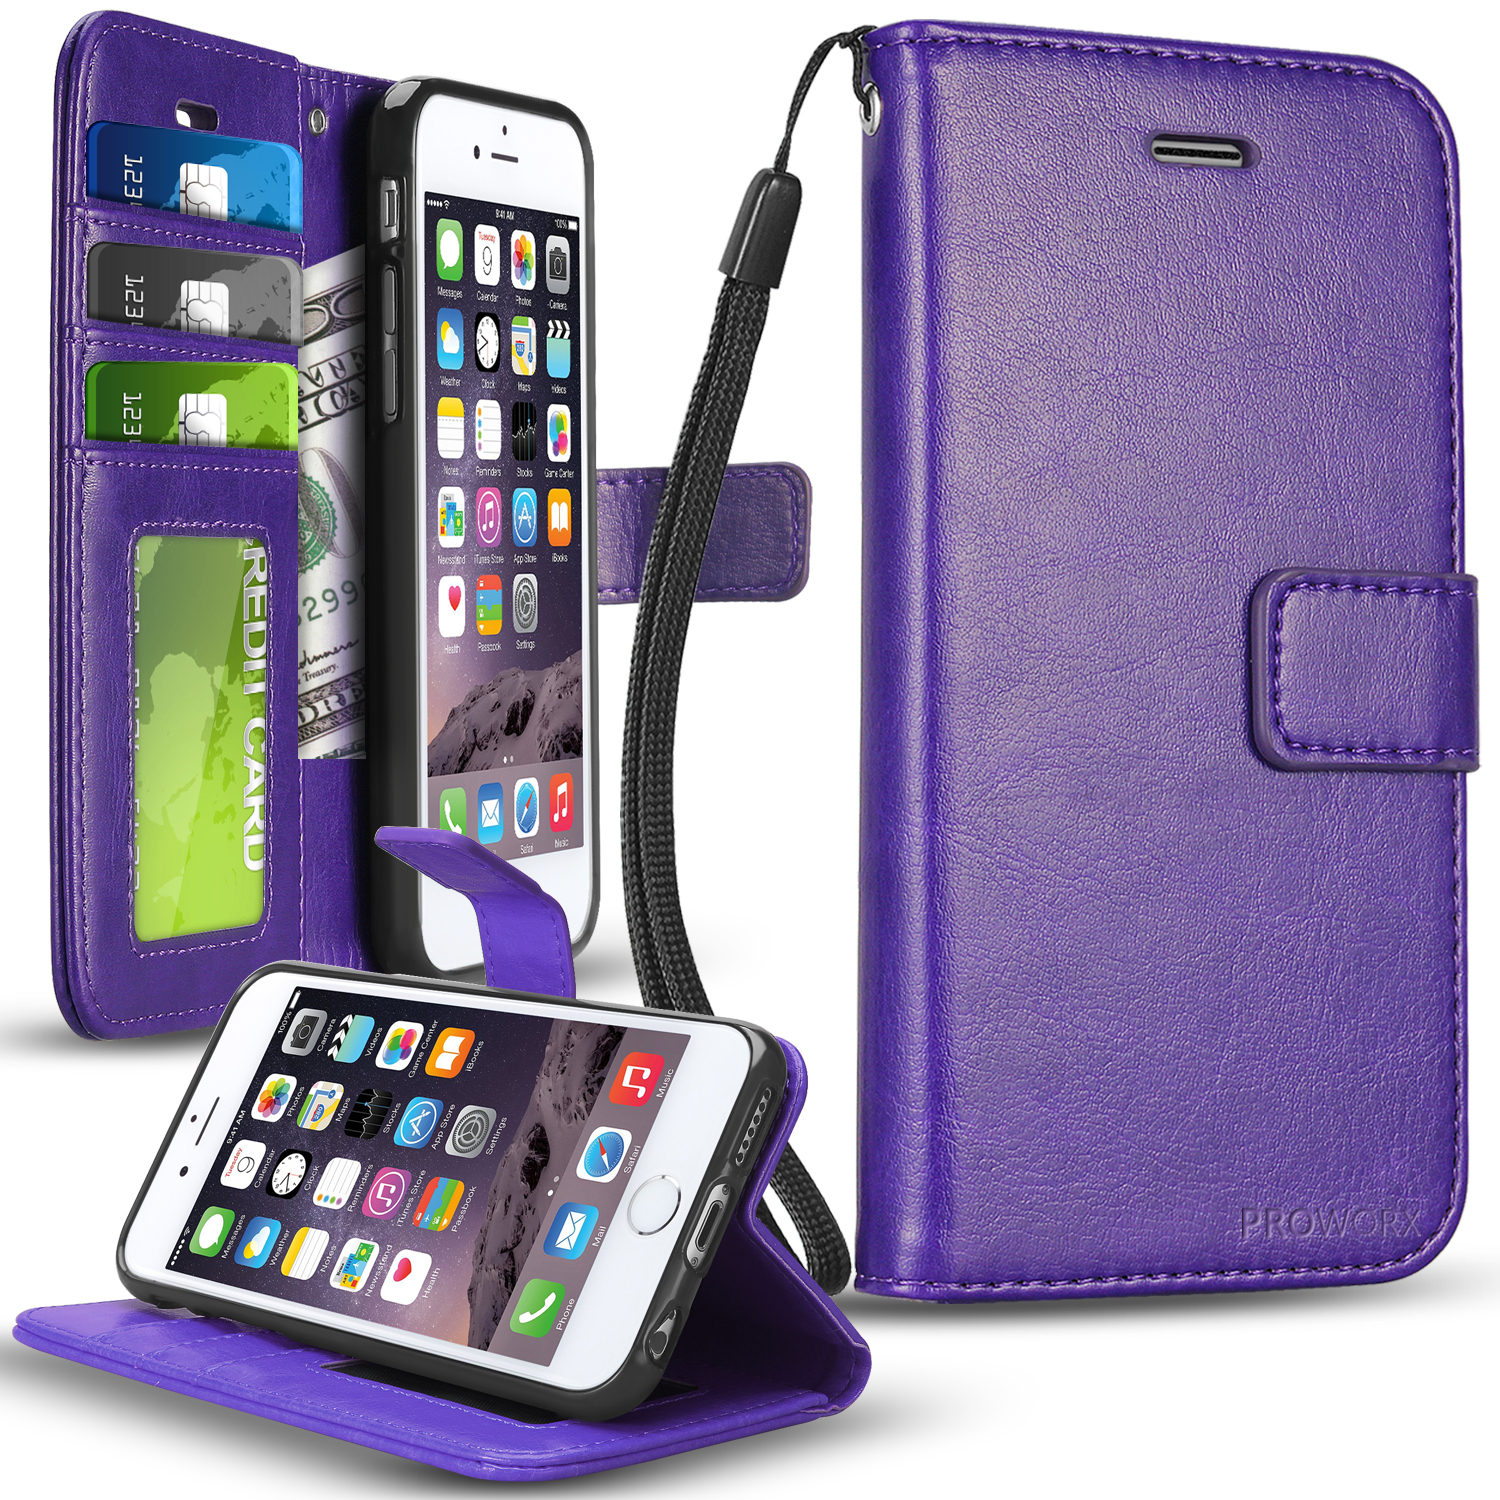 Apple iPhone 6 Plus 6S Plus (5.5) Purple ProWorx Wallet Case Luxury PU Leather Case Cover With Card Slots & Stand